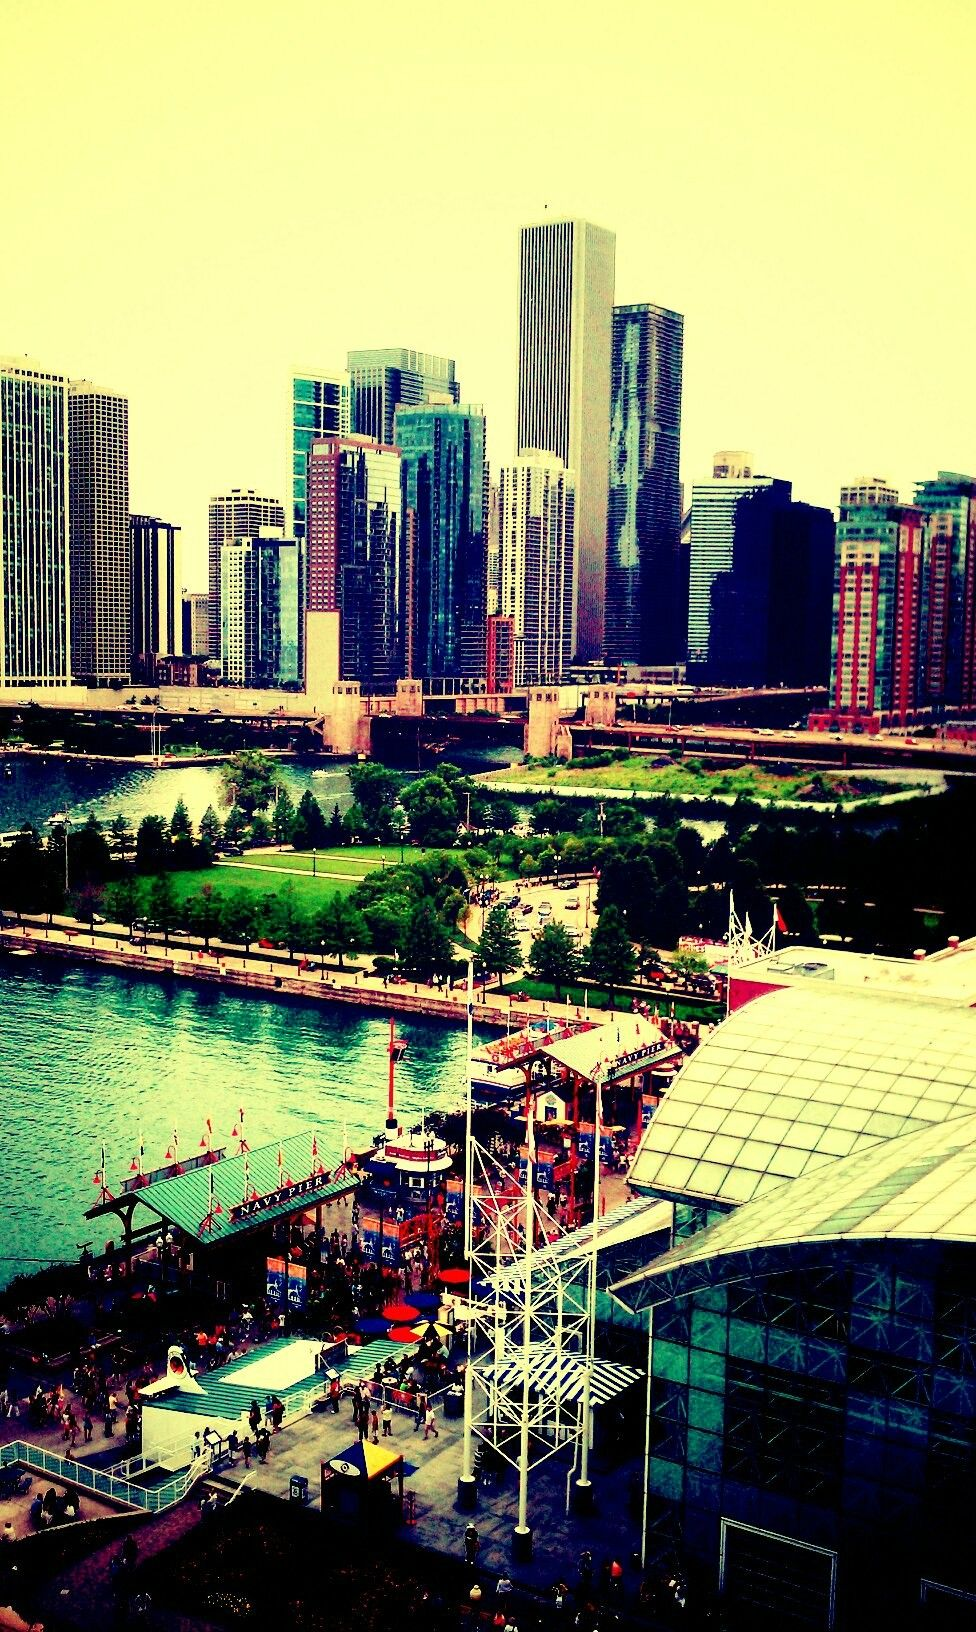 Navy Pier Chicago We Boarded A Boat Here For A River Tour